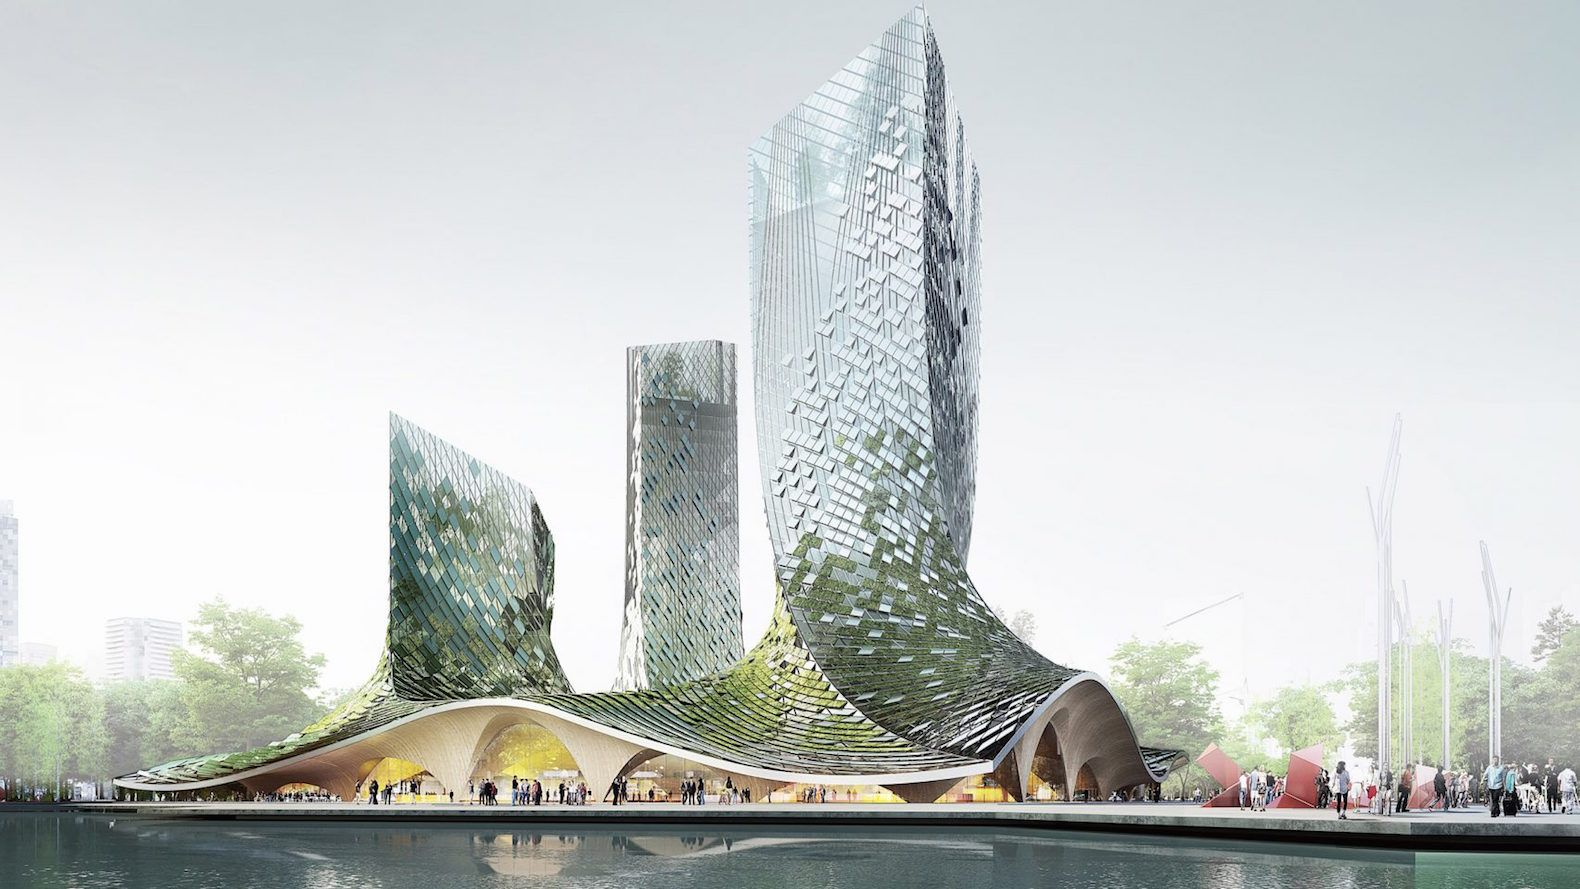 Curvaceous Algae Covered Towers Proposed For Hangzhou Futuristic Architecture Concept Architecture Organic Architecture